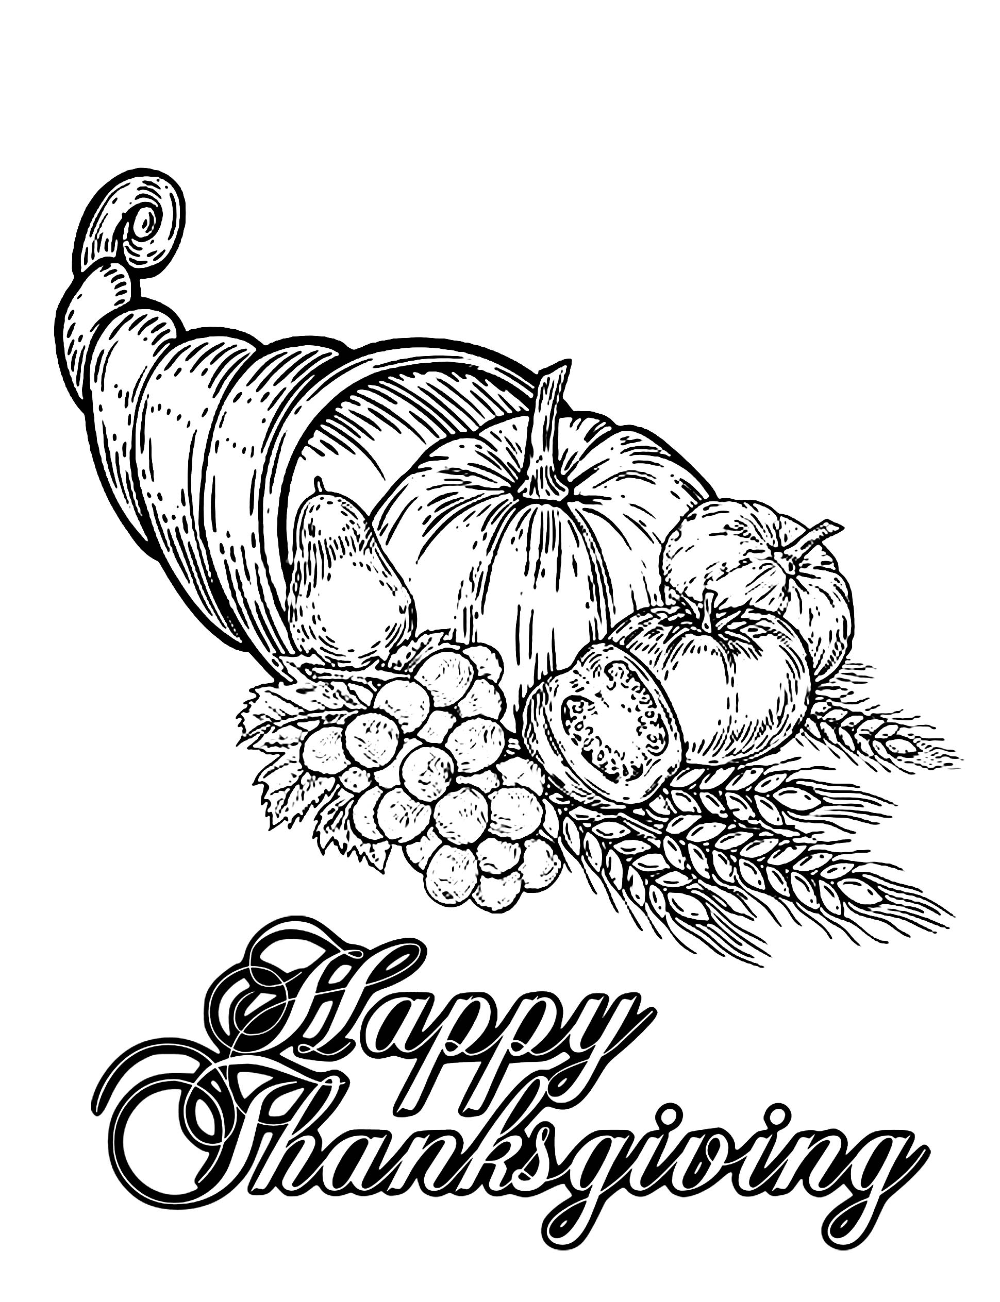 Happy Thanksgiving Happy Thanksgiving Coloring Page From The Galle Thanksgiving Coloring Pages Free Thanksgiving Coloring Pages Thanksgiving Coloring Sheets [ 1302 x 1000 Pixel ]